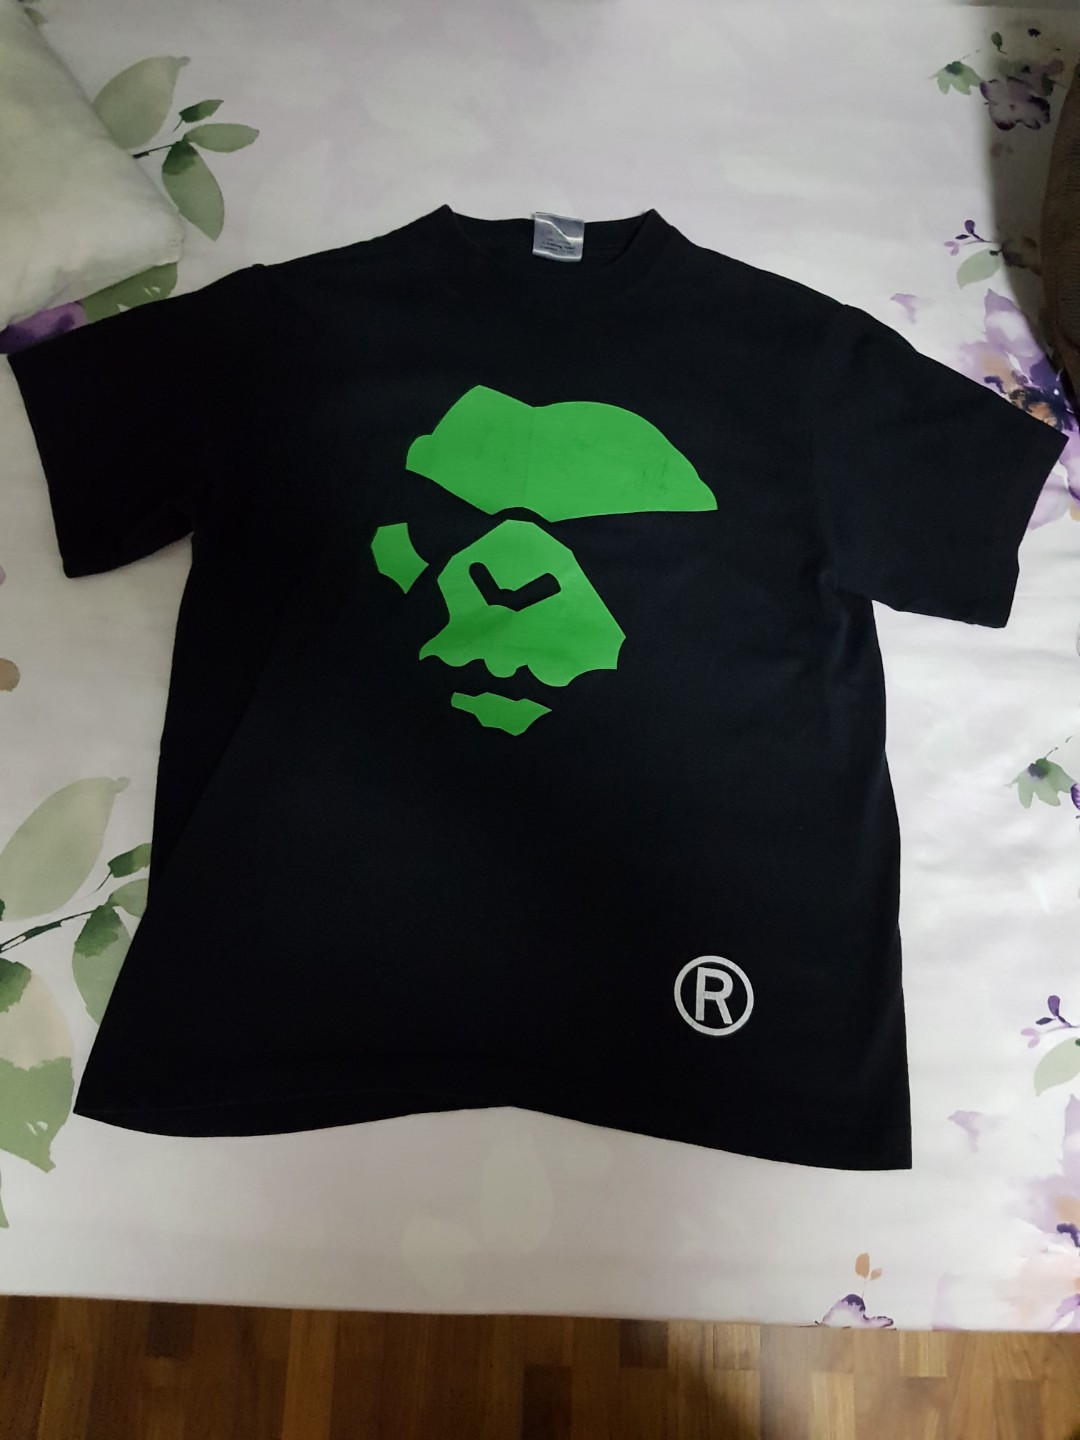 20426635f Vintage Bape Tee sz L, Men's Fashion, Clothes, Tops on Carousell